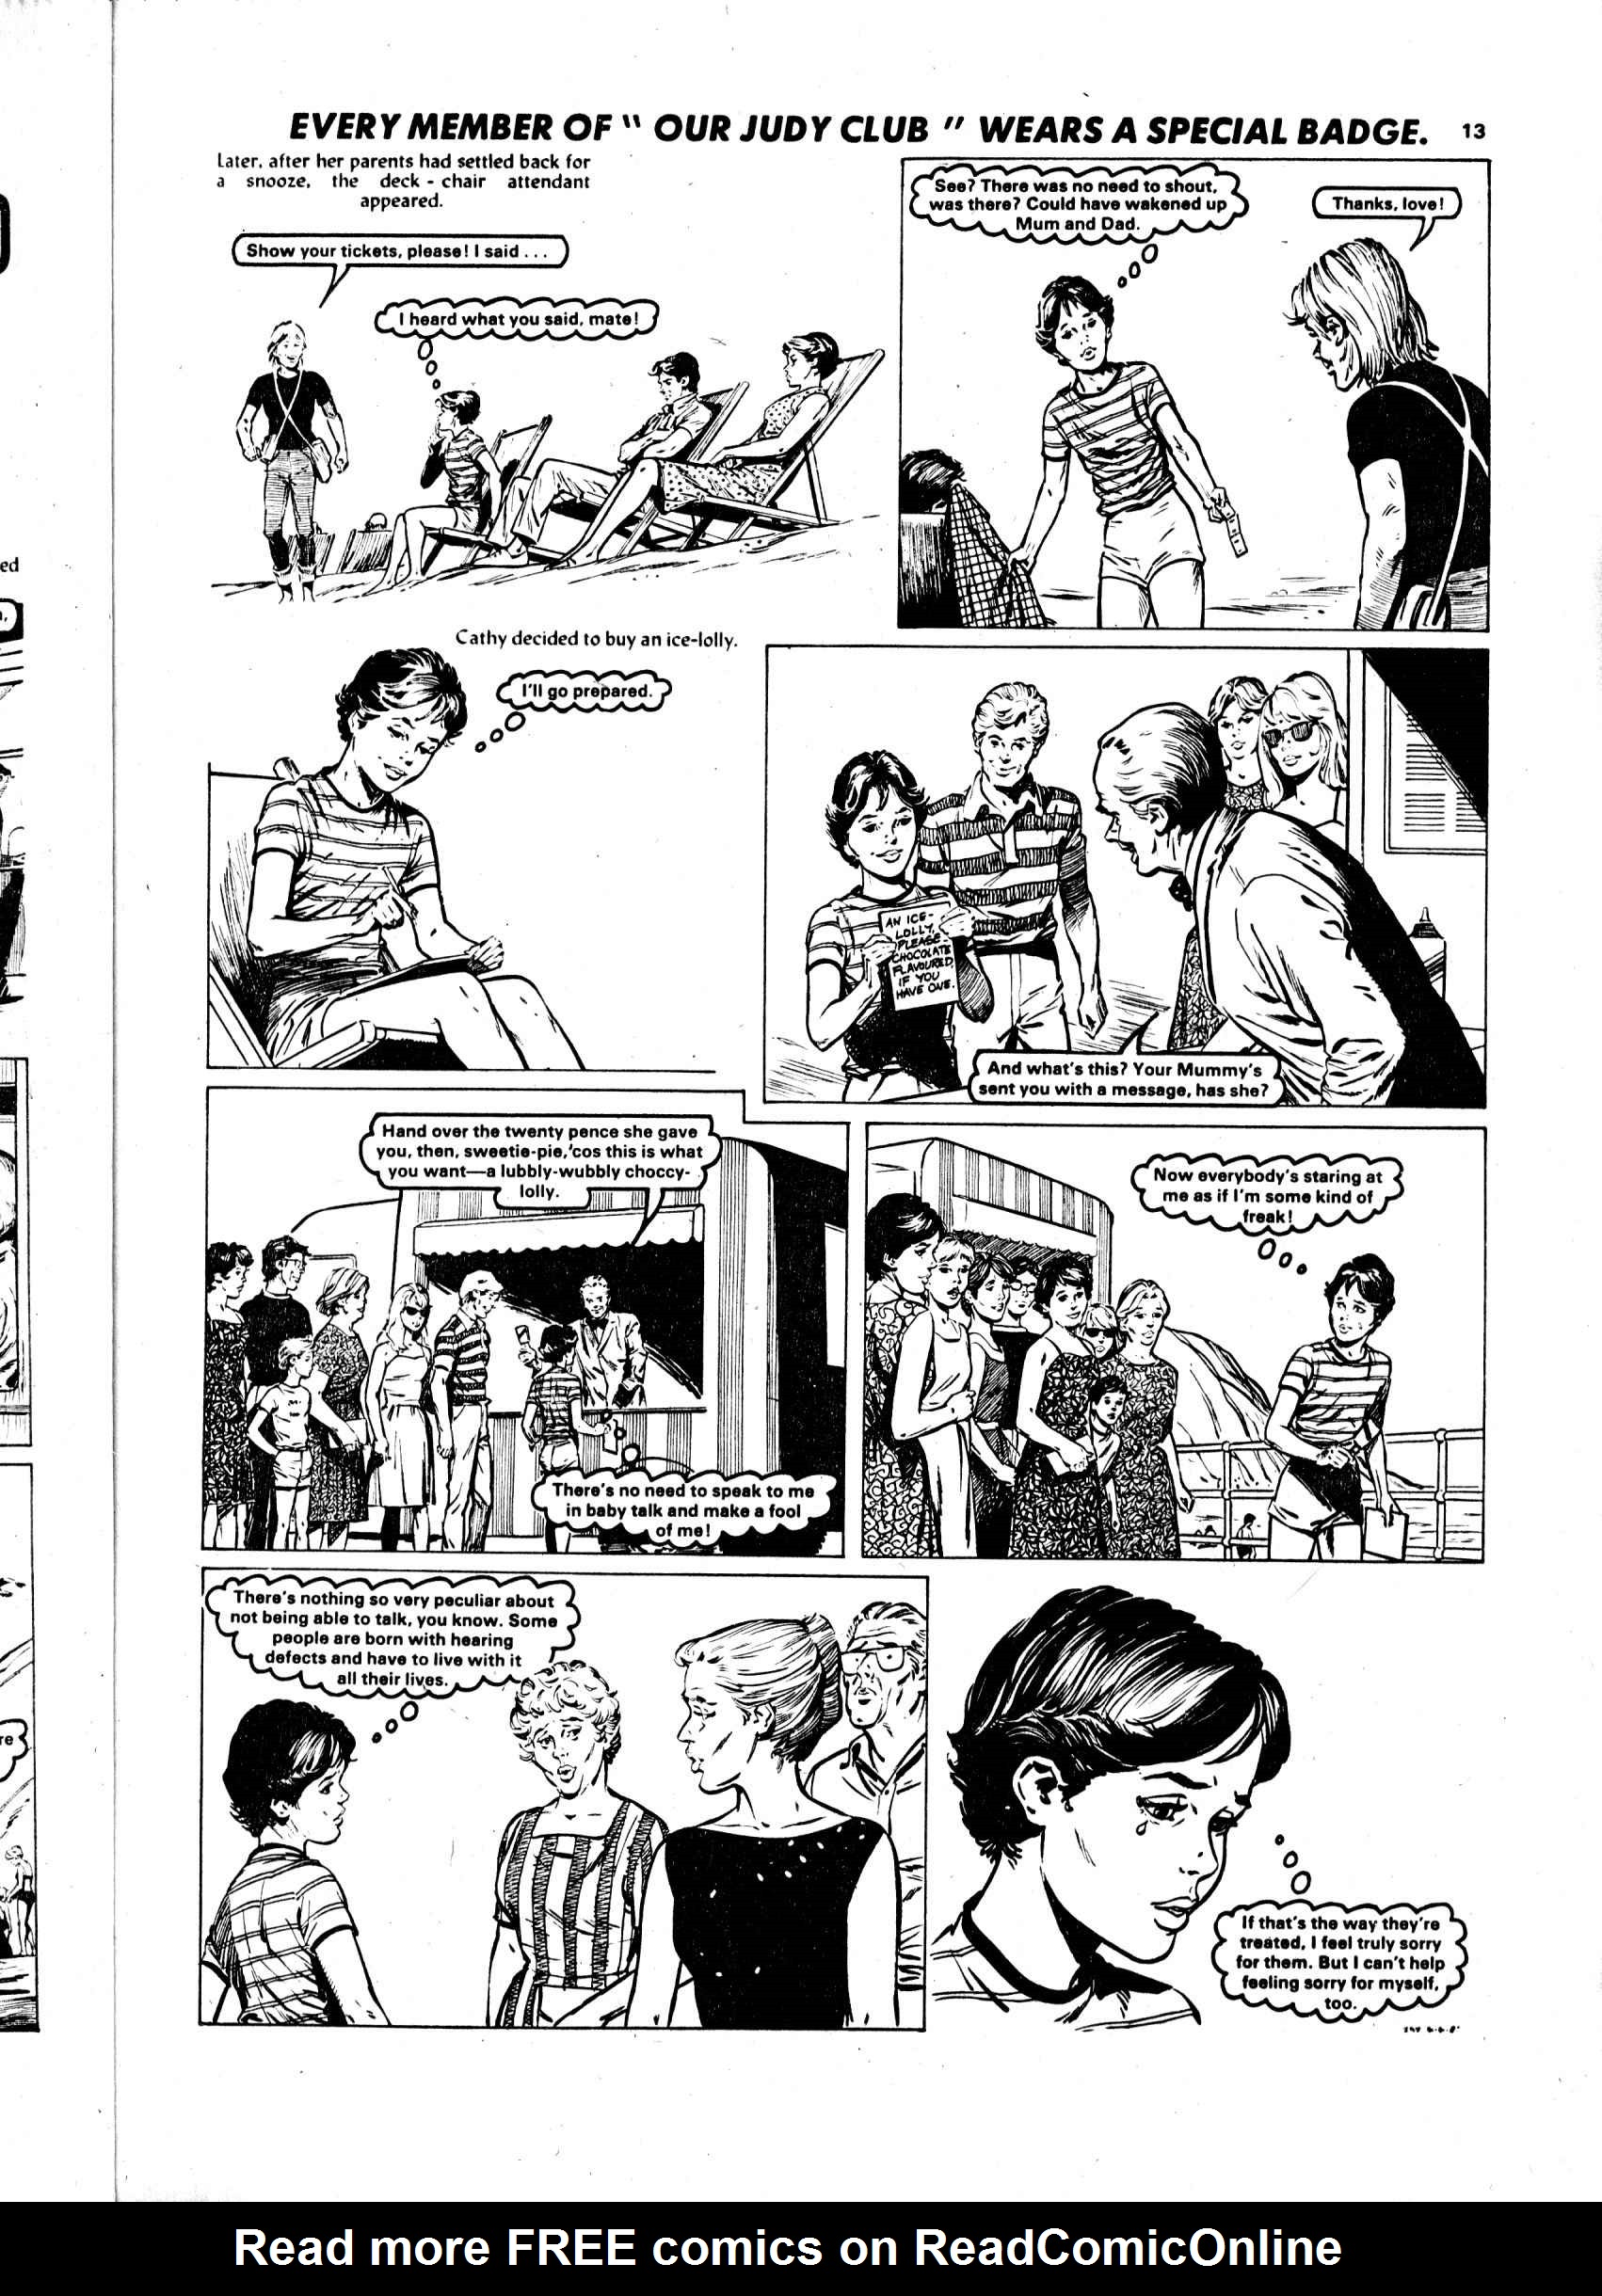 Read online Judy comic -  Issue #1108 - 13